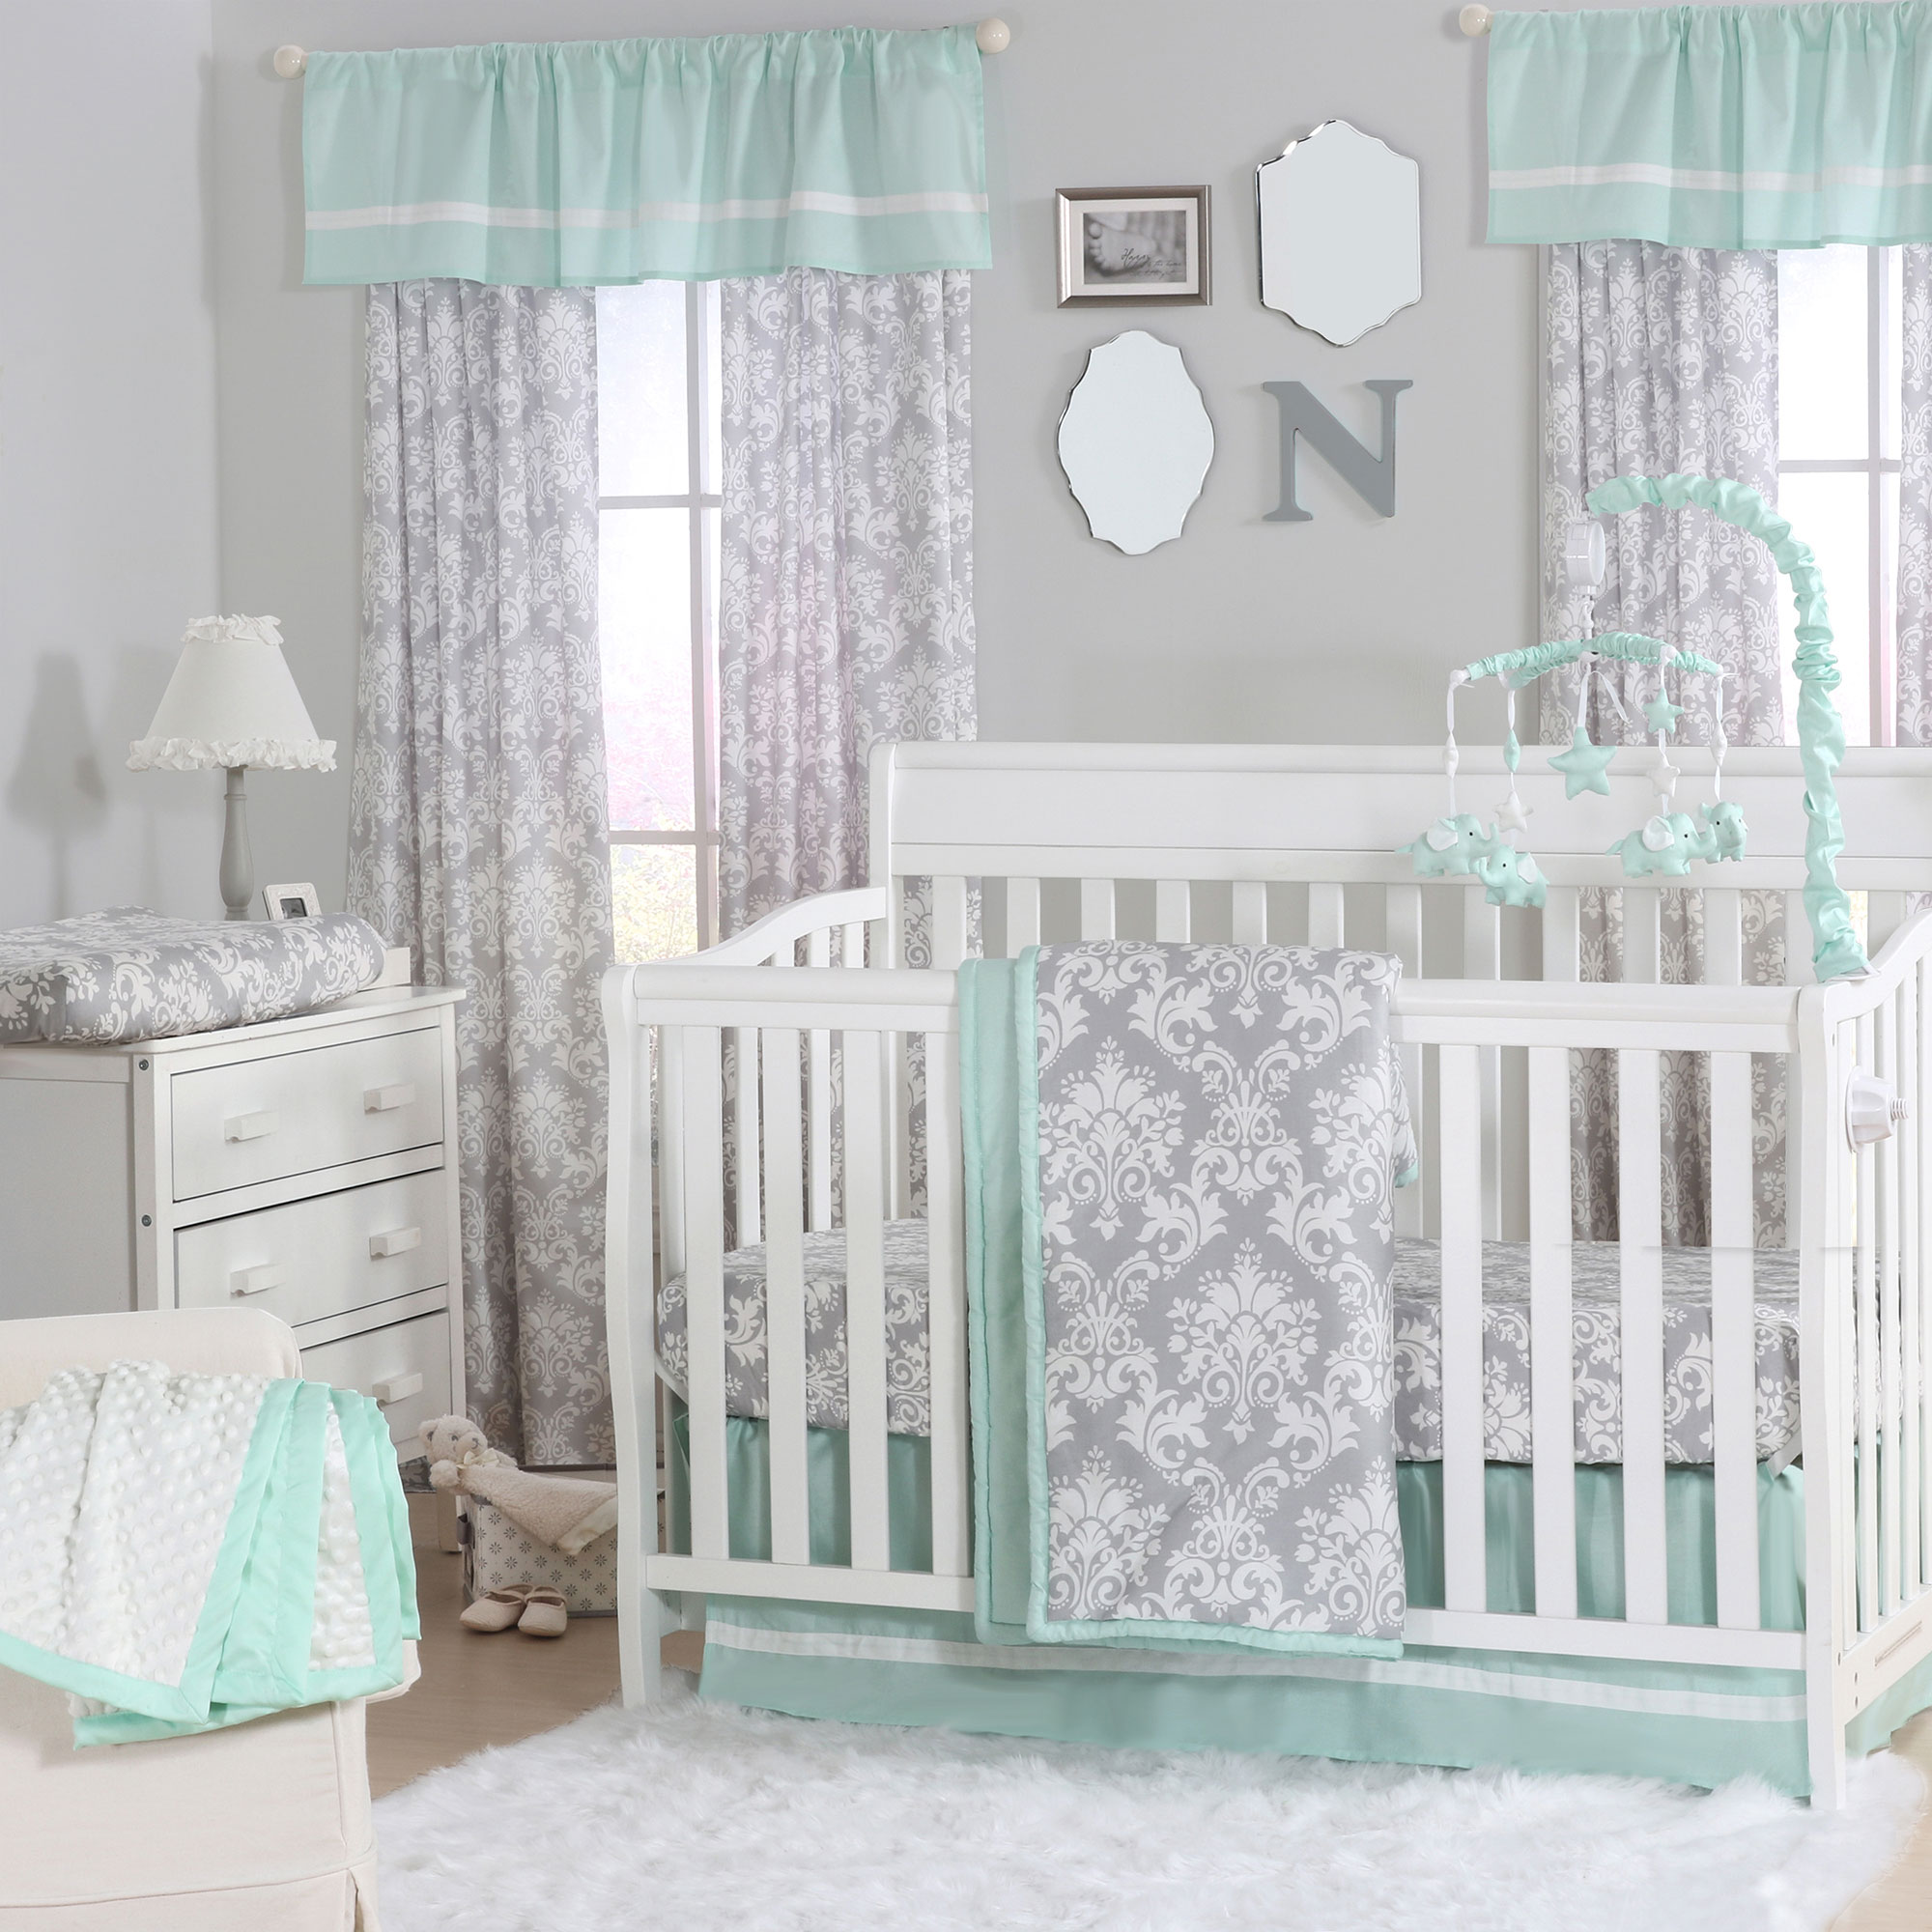 The Peanut Shell 3 Piece Baby Crib Bedding Set - Grey Damask and Mint Green - 100% Cotton Quilt, Crib Skirt and Sheet